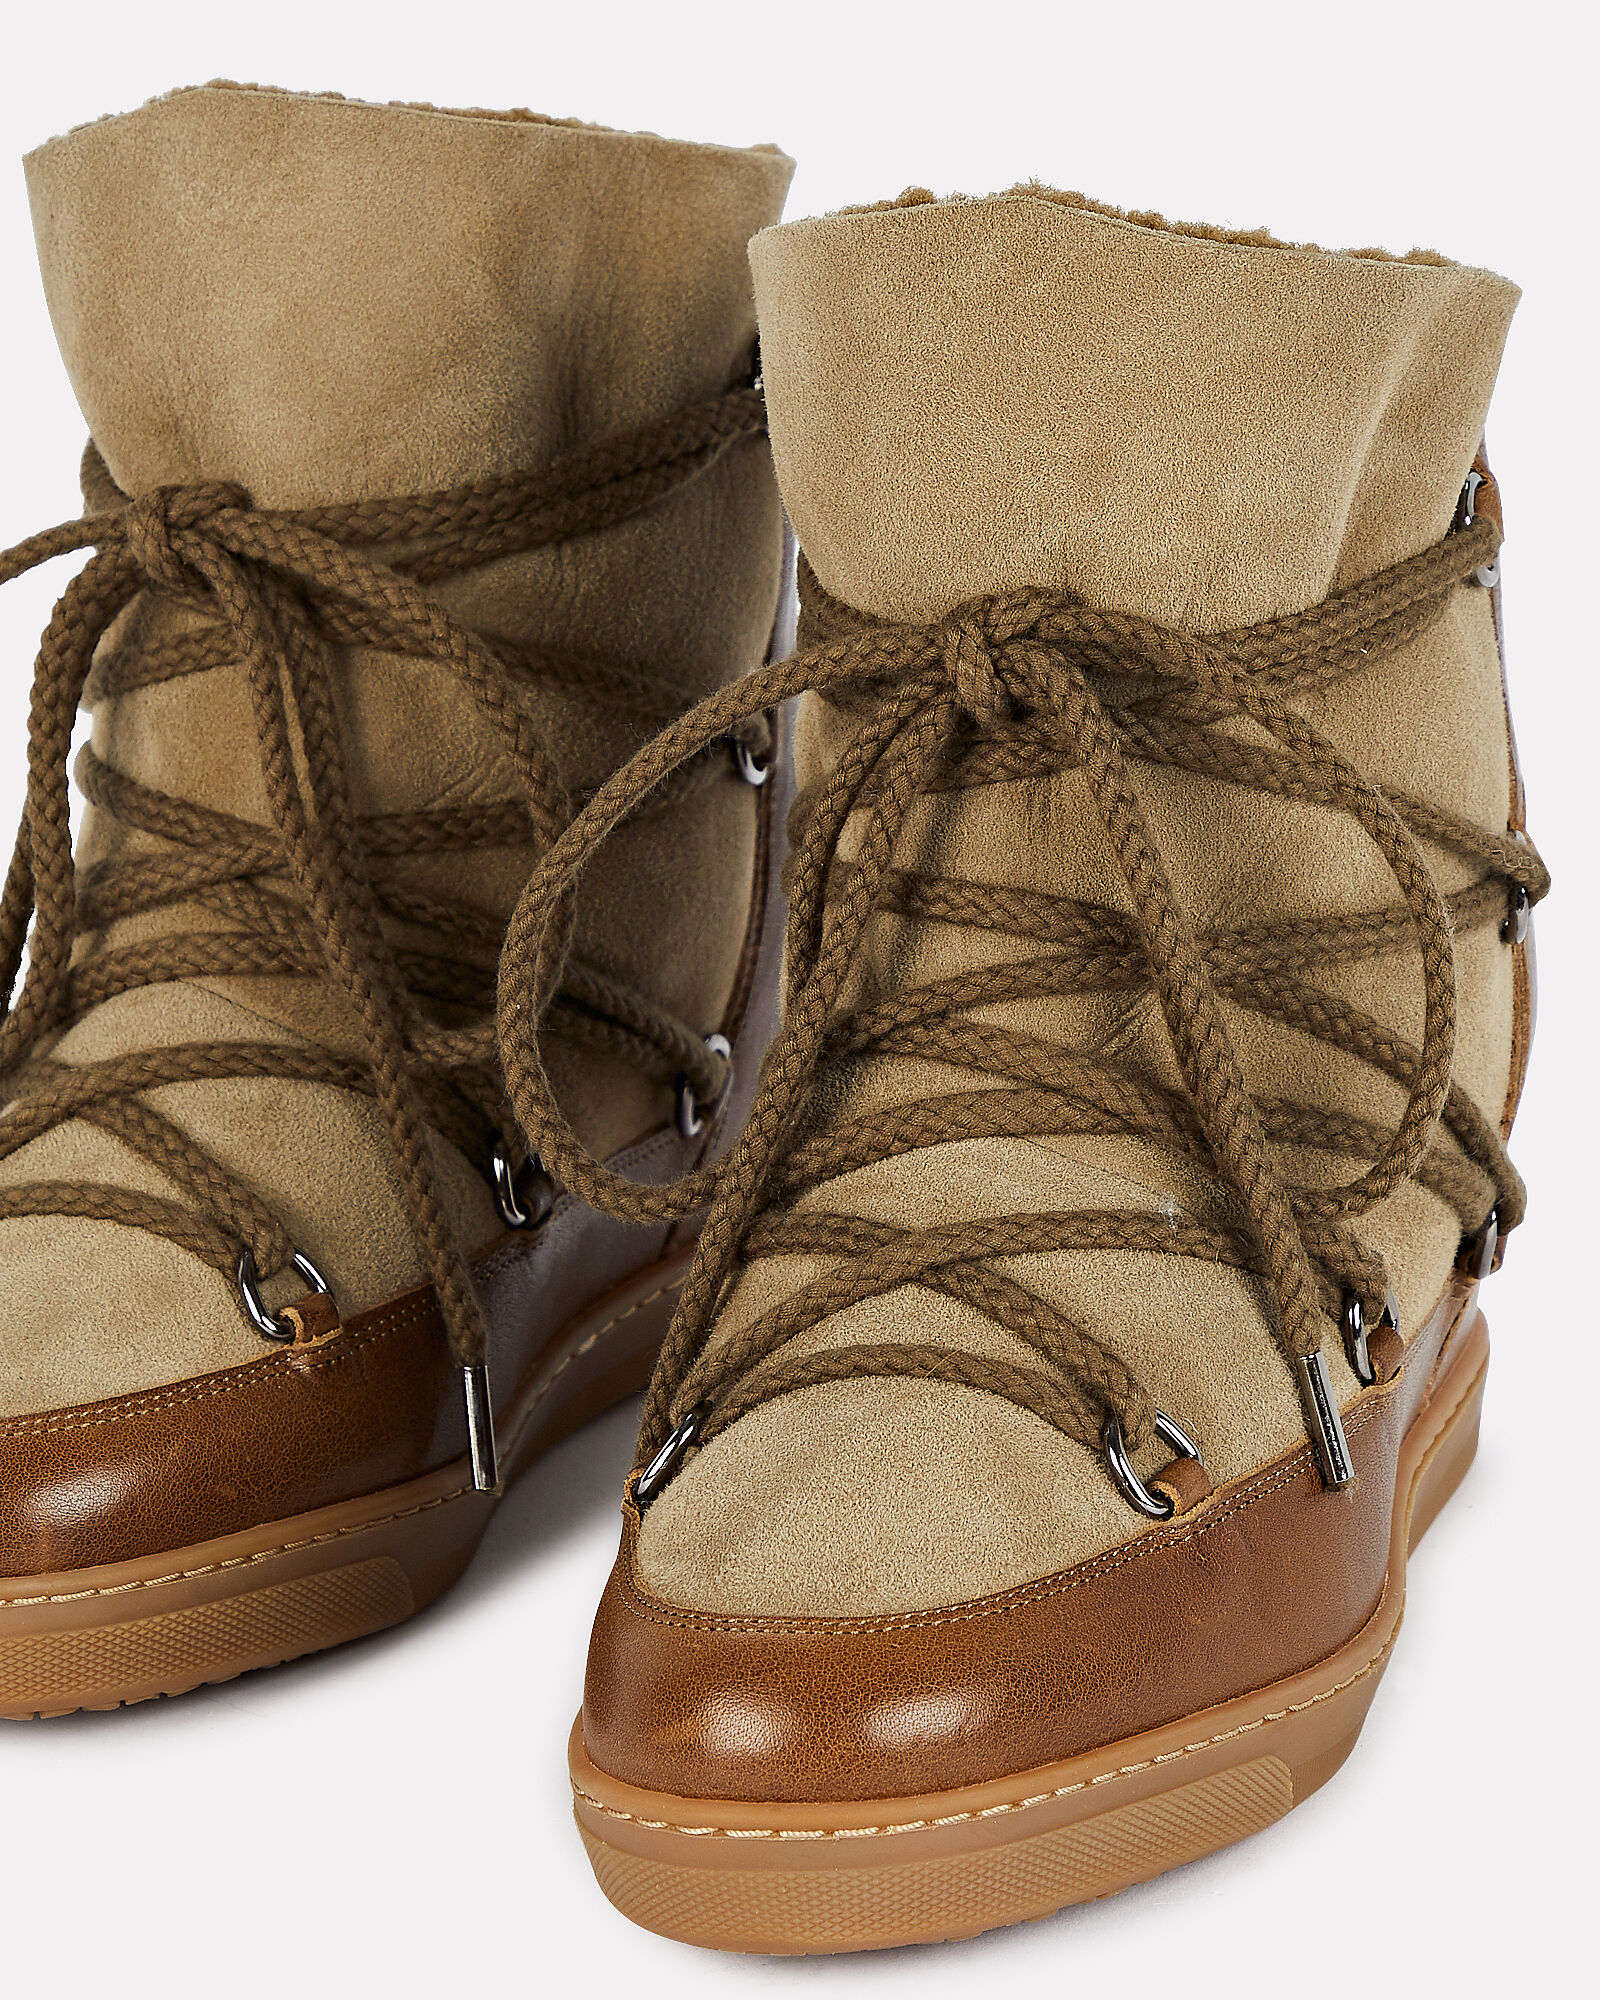 Nowles Leather-Trimmed Shearling Booties, BROWN, hi-res